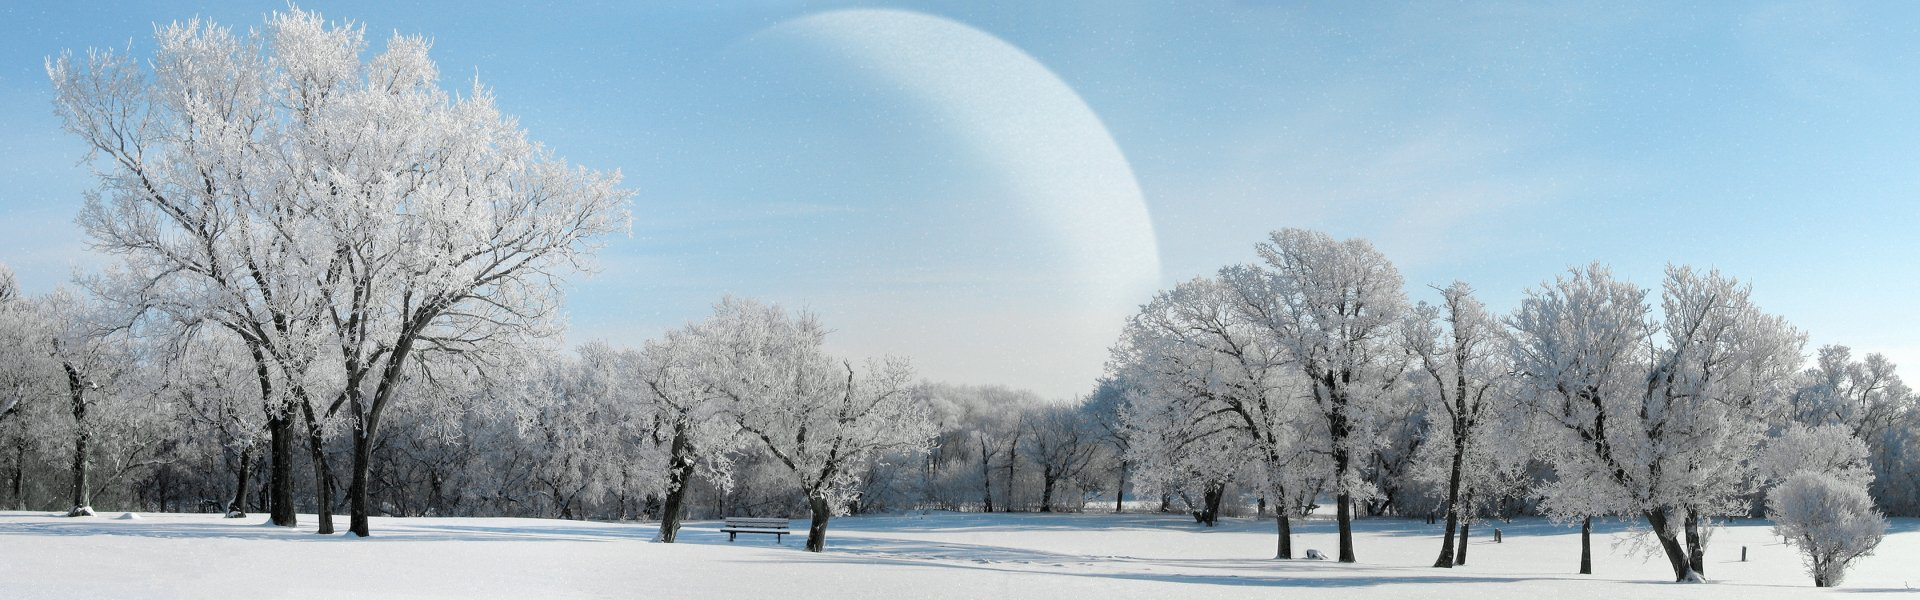 Multi Monitor - Earth  Planet Landscape Winter Snow Wallpaper